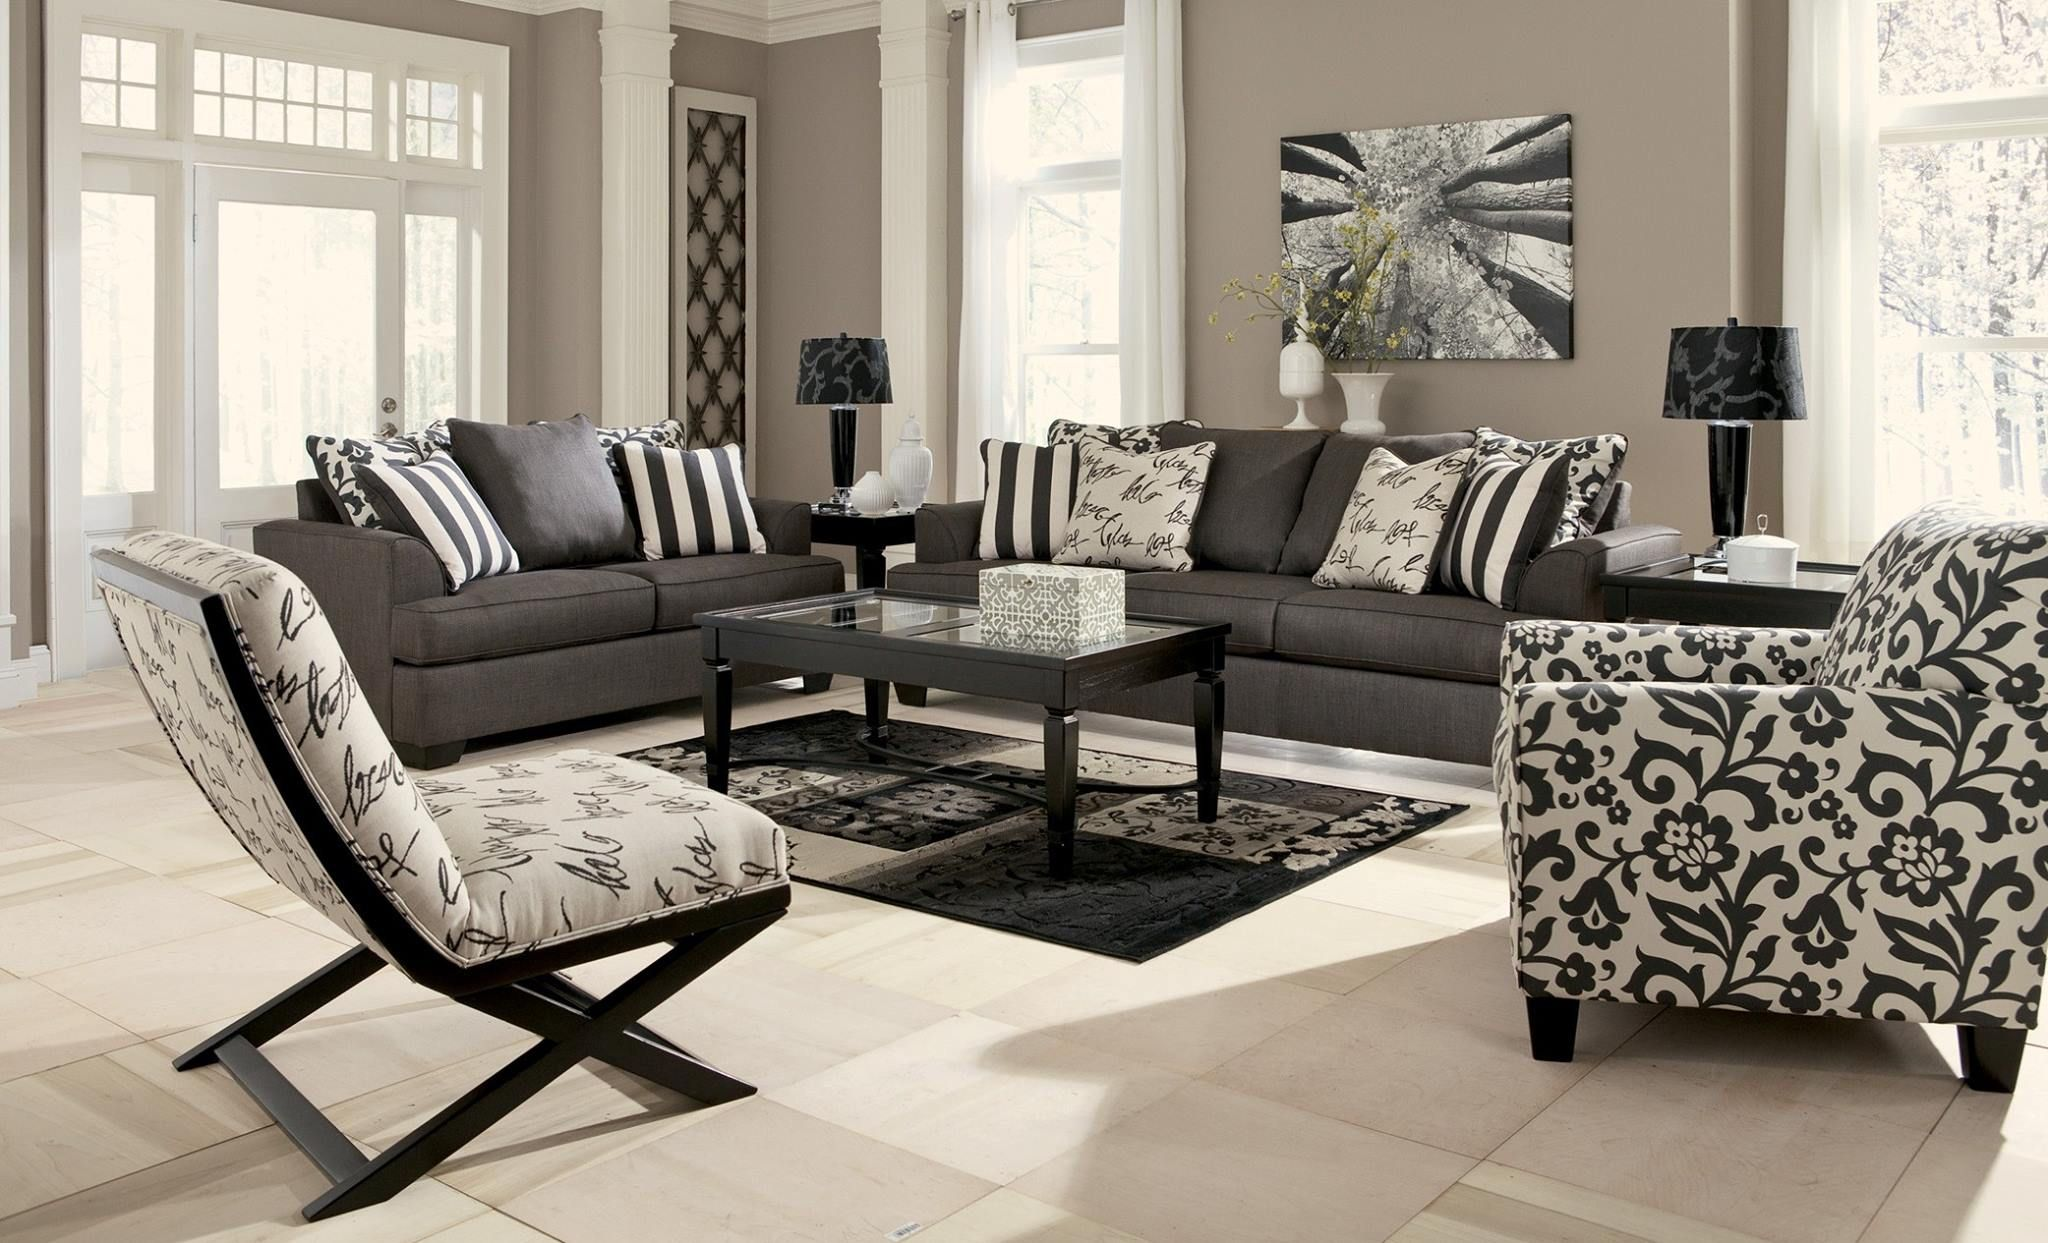 Movie Night Improved With Living Room Furniture From National Furniture  Liquidators... CALL TODAY